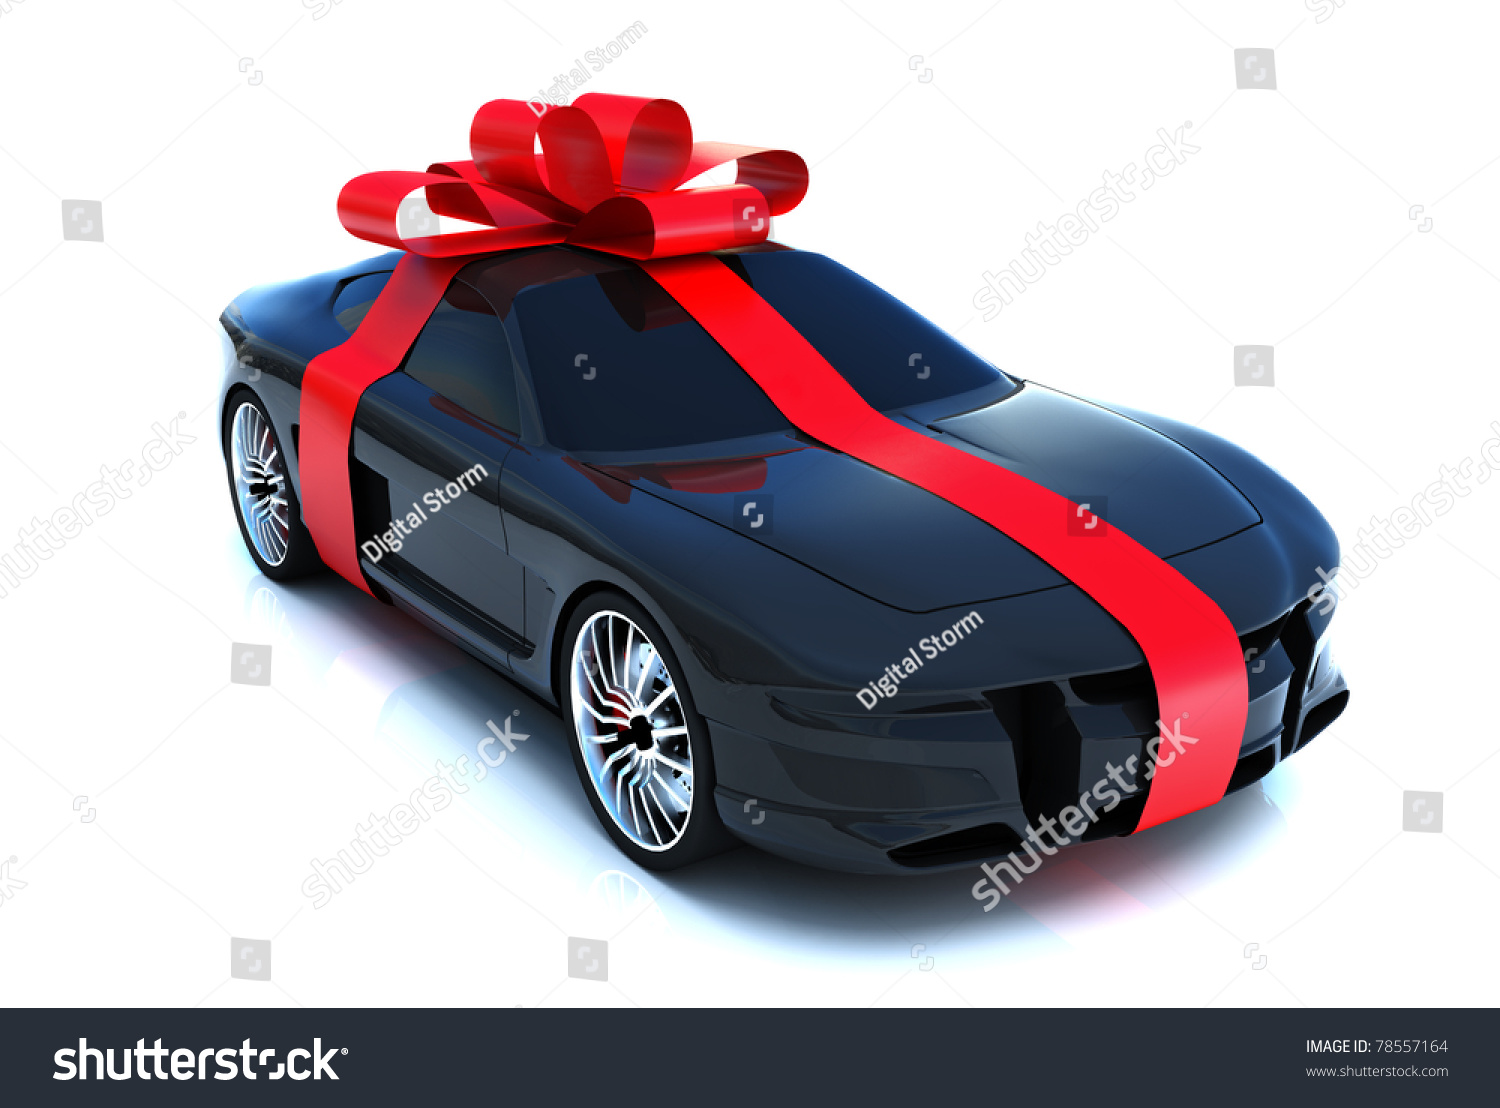 Expensive Car For Sale Or Gift Royalty Free Stock Image: Big Gift Sports Car Bow Isolated Stock Illustration